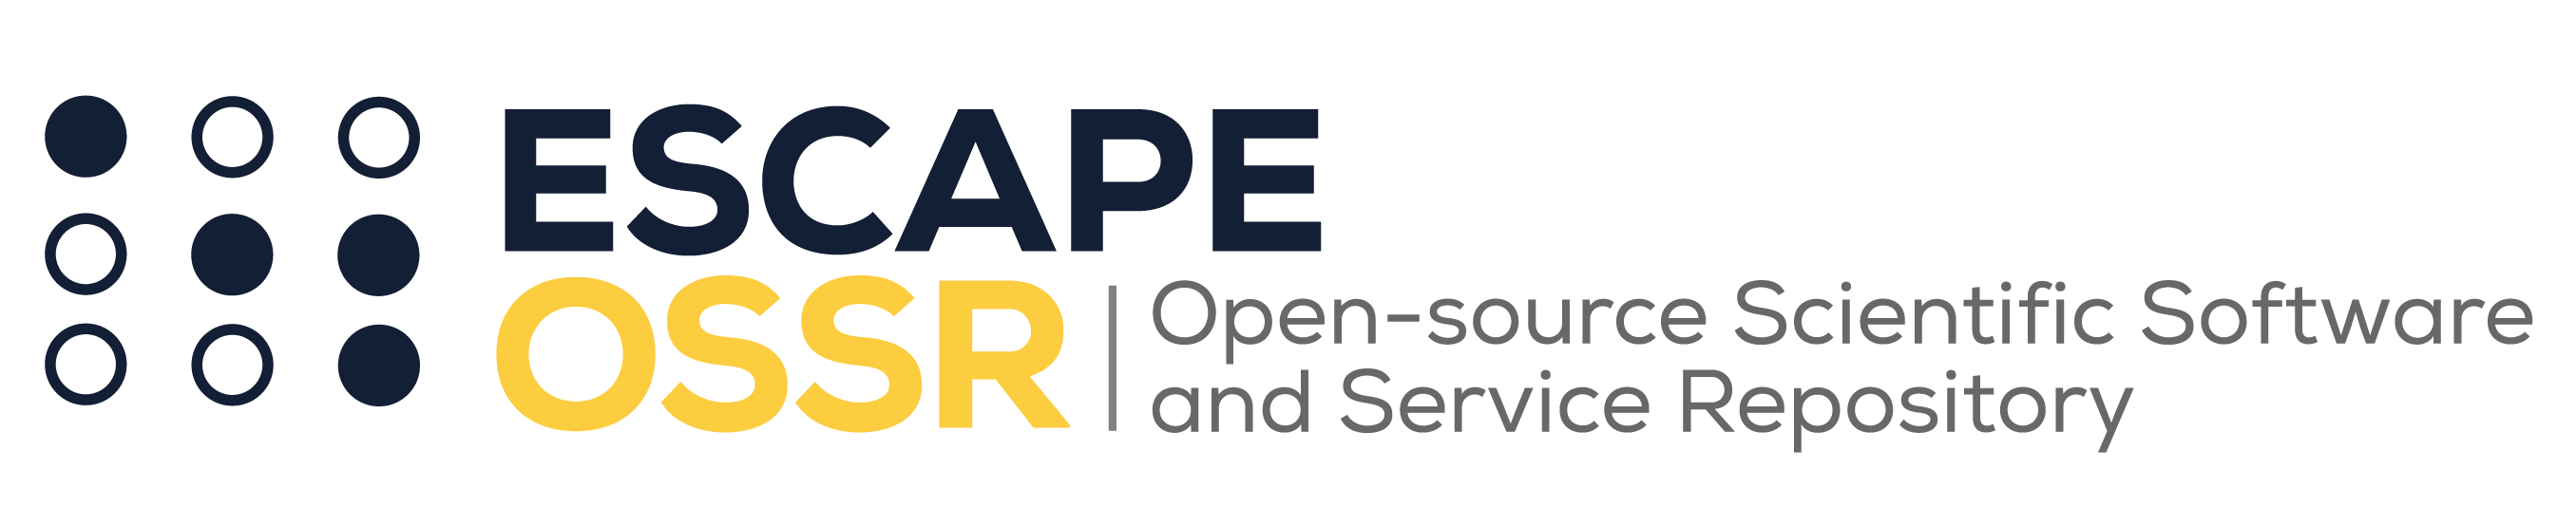 Services_ESCAPE_OSSR